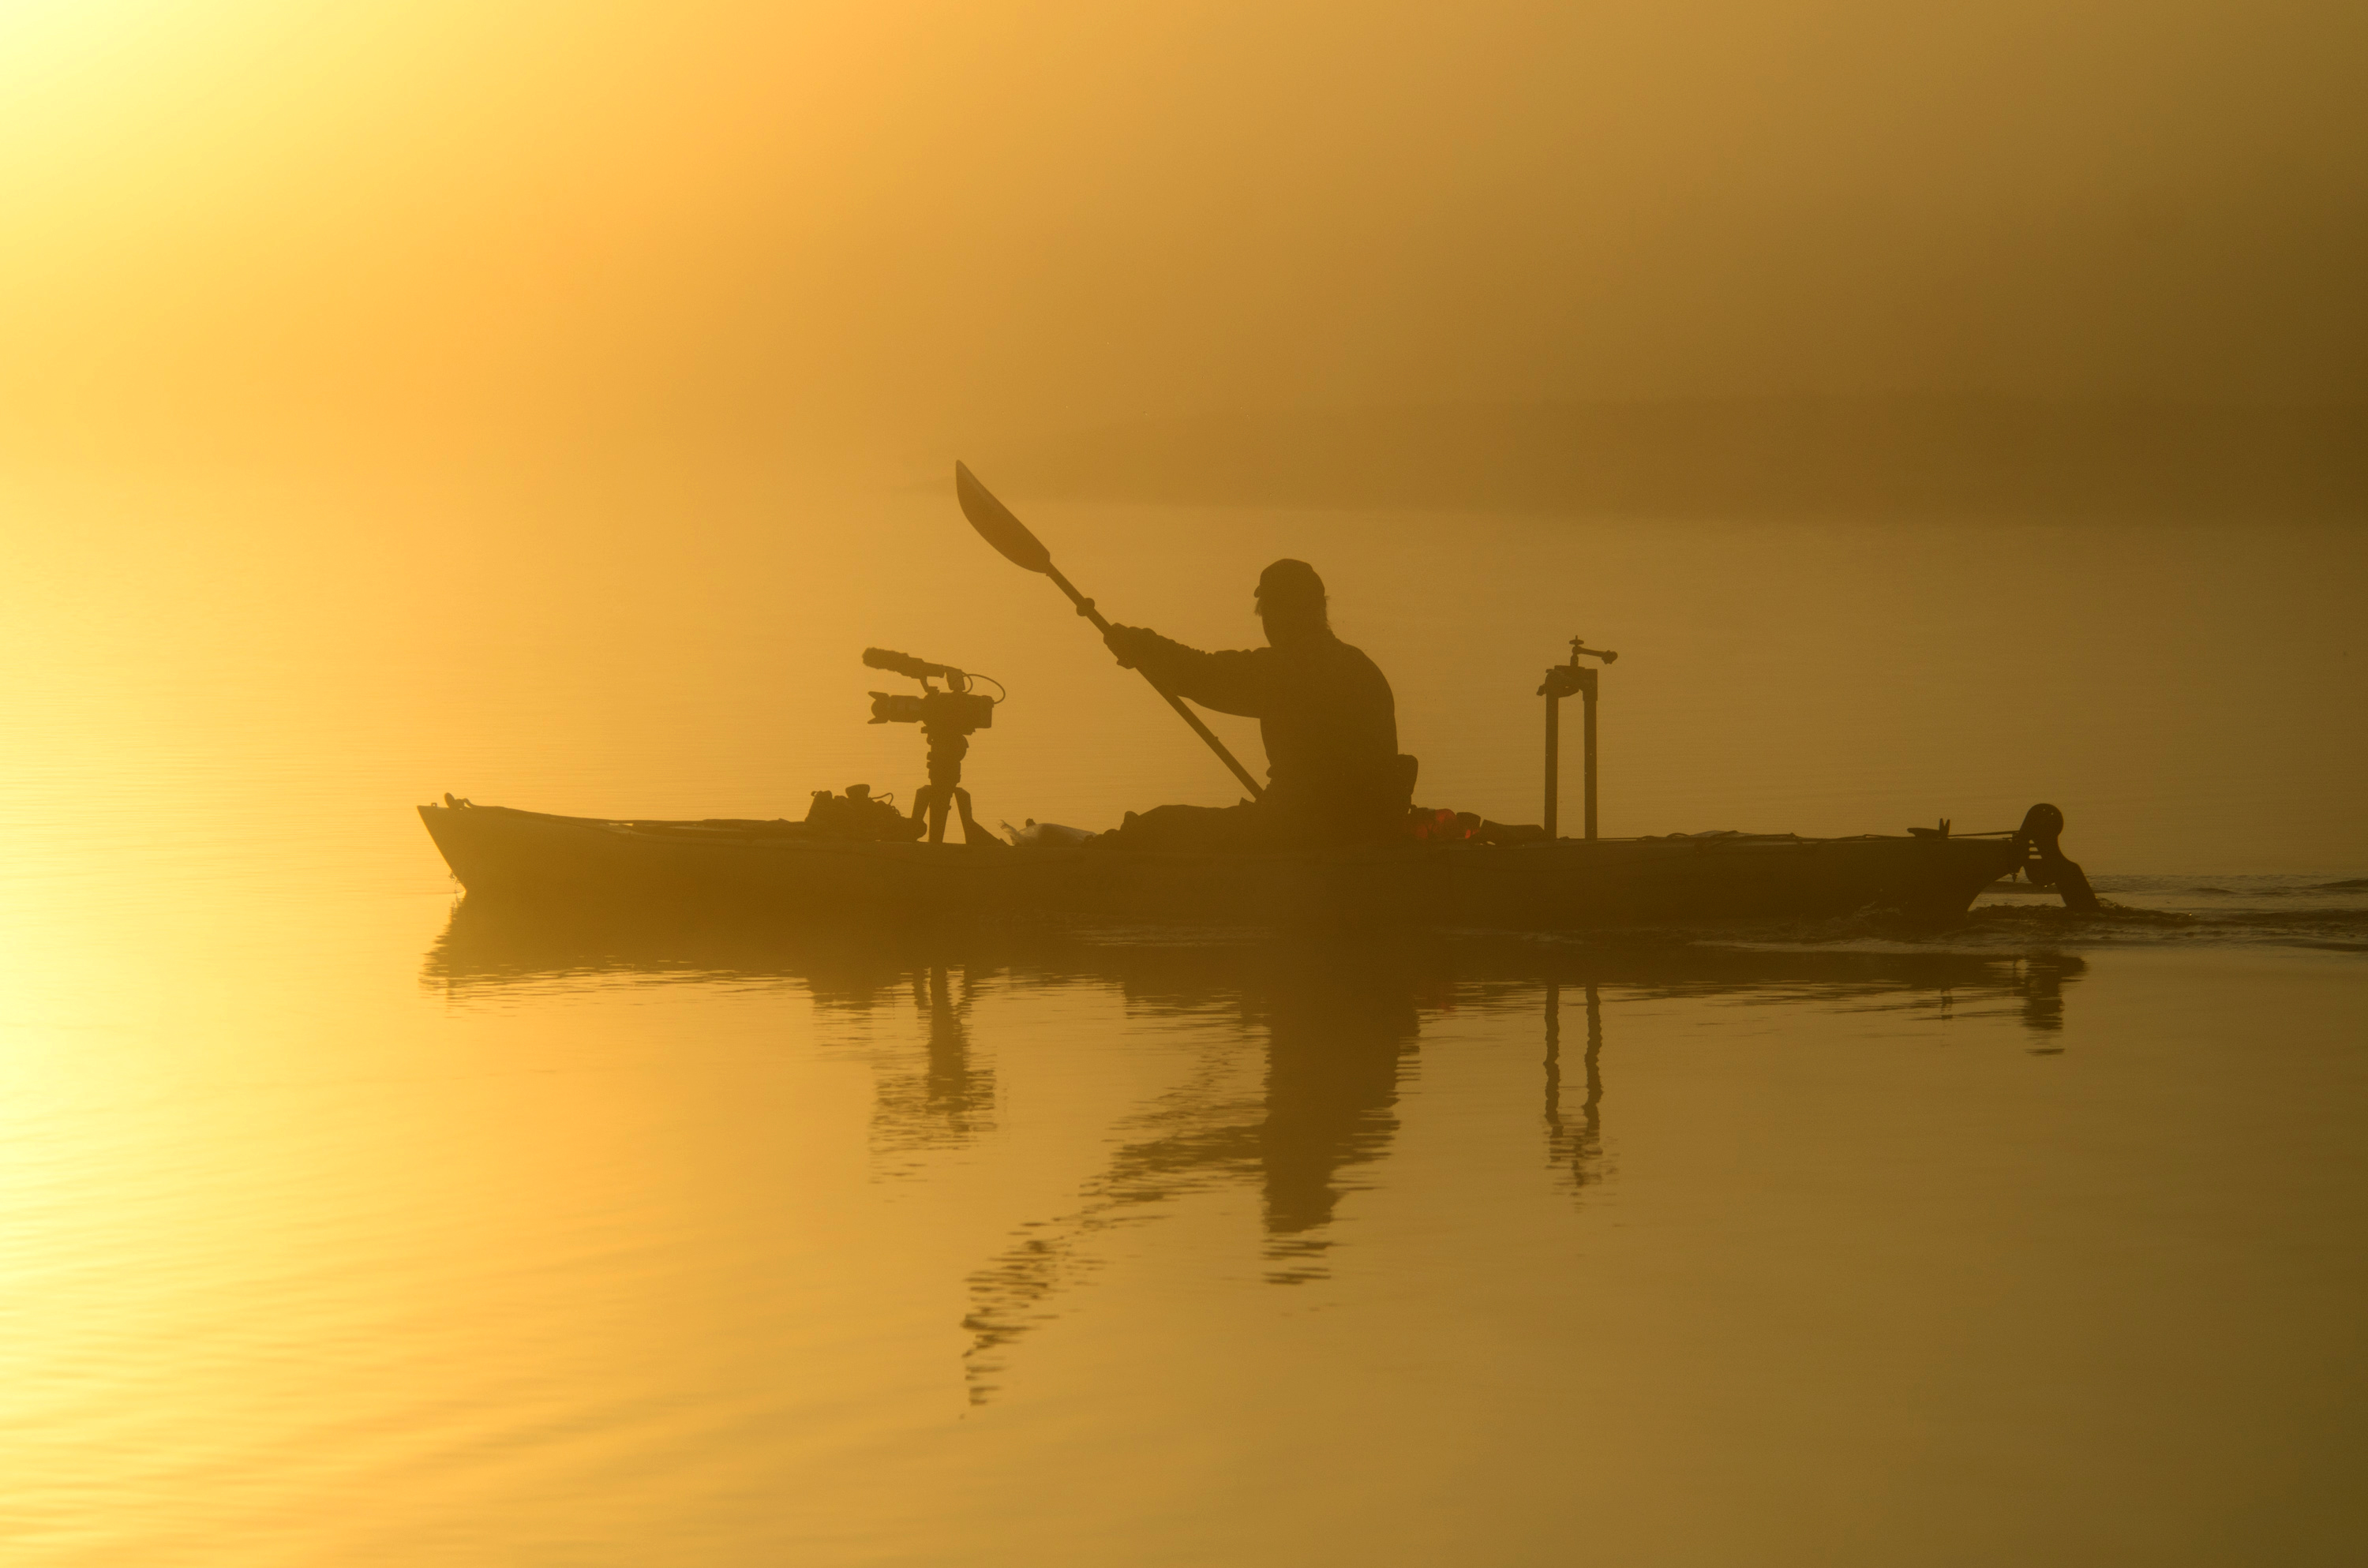 Elam on kayak filming the morning sunrise on the St. Johns River. Image by Carlton Ward, Jr. 2012 copyright.